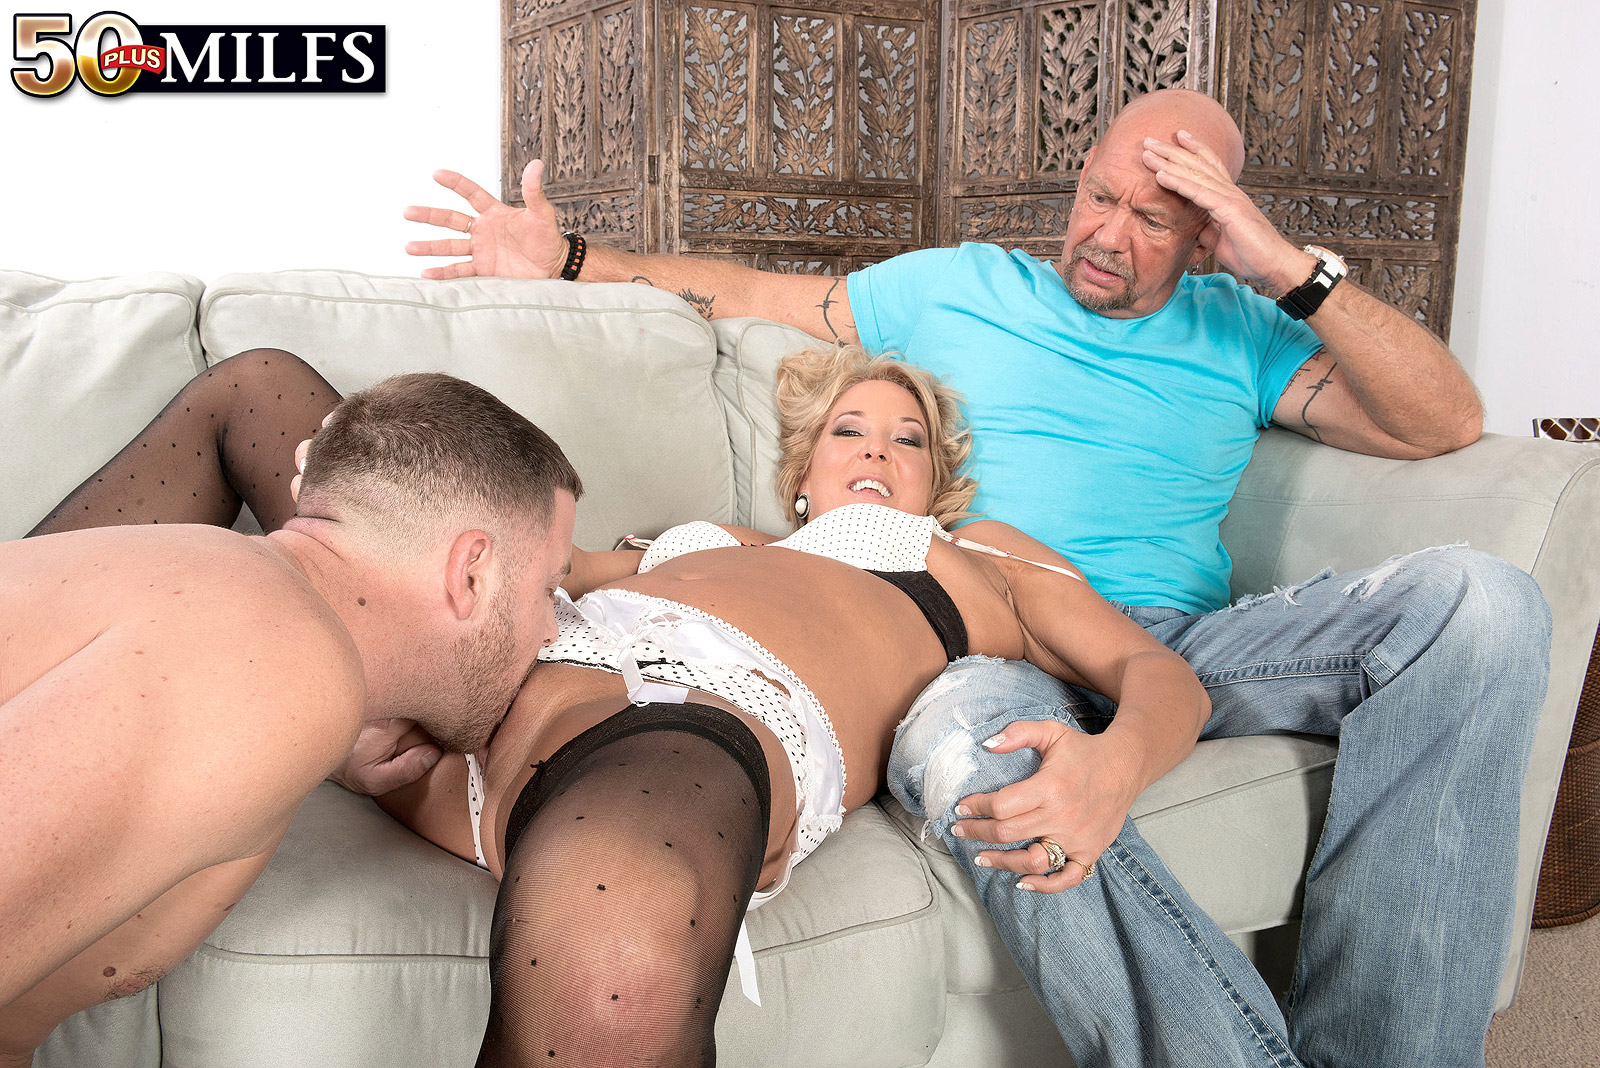 granny mia morgan feeling her first new cock after 30 years of marriagen